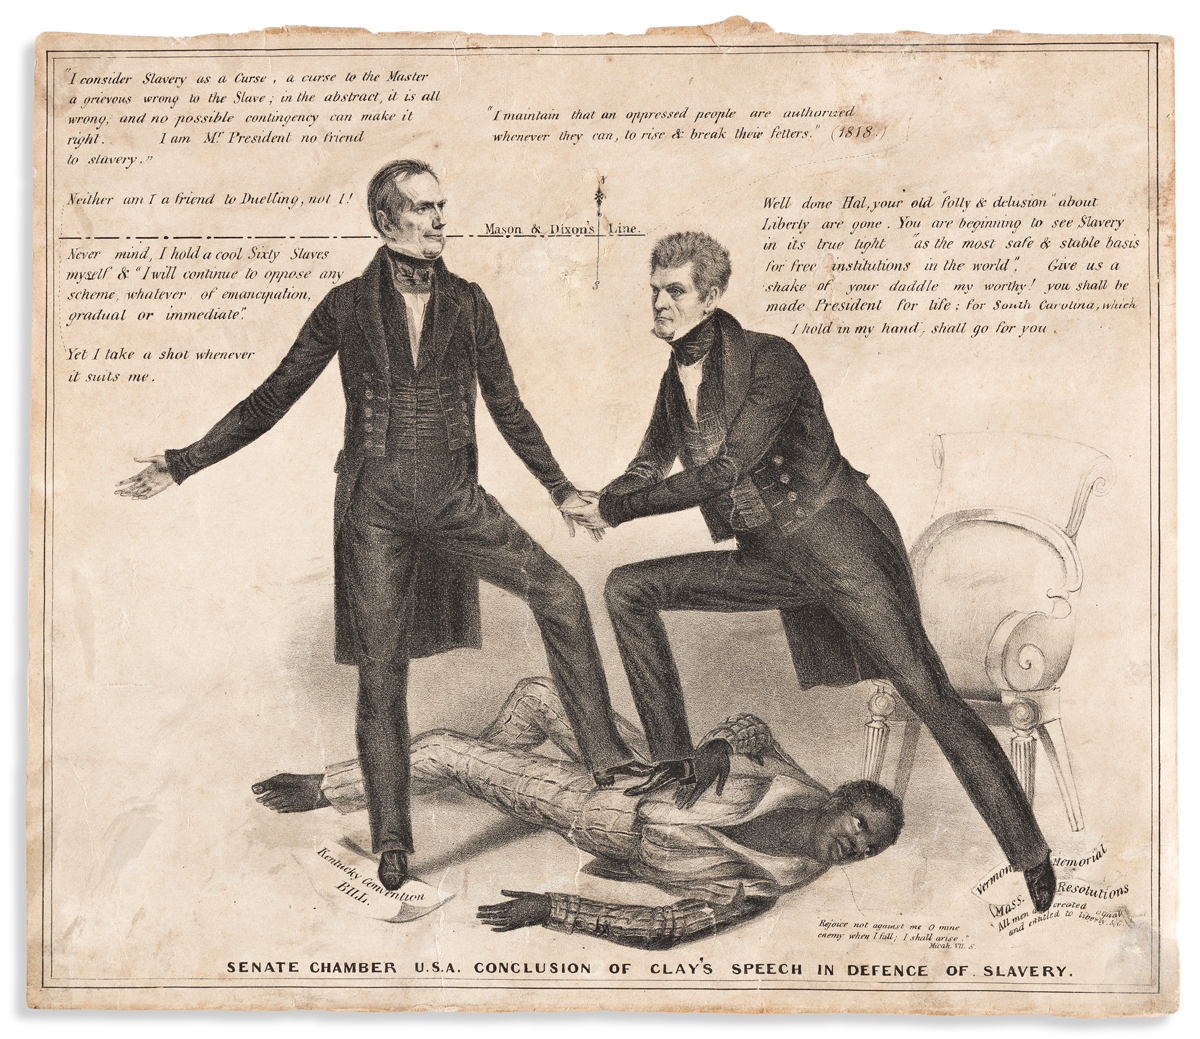 (SLAVERY AND ABOLITION.) Senate Chamber U.S.A. Conclusion of Clays Speech in Defence of Slavery.